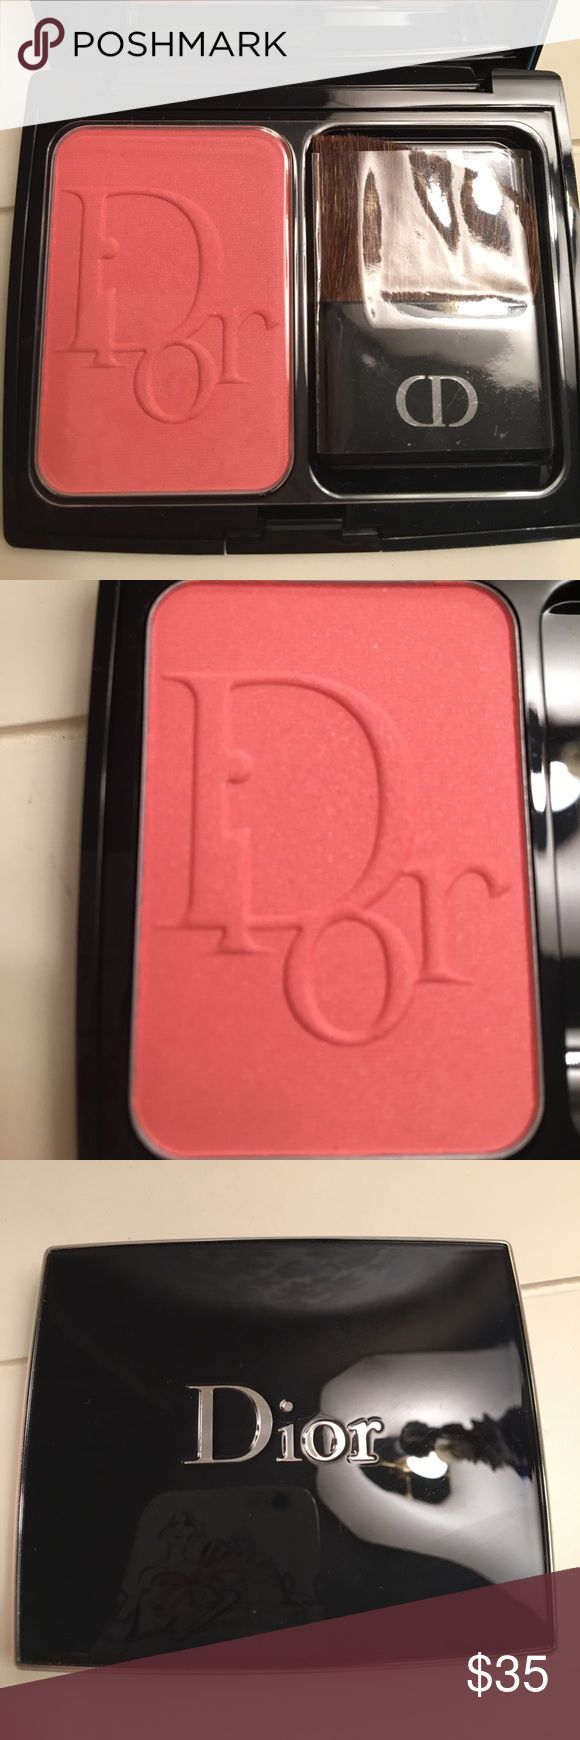 Dior Blush. Color is happy cherry. Brand new condition. Never used. Still has plastic insert covering Blush and brush. I don't have the box. Dior Makeup Blush